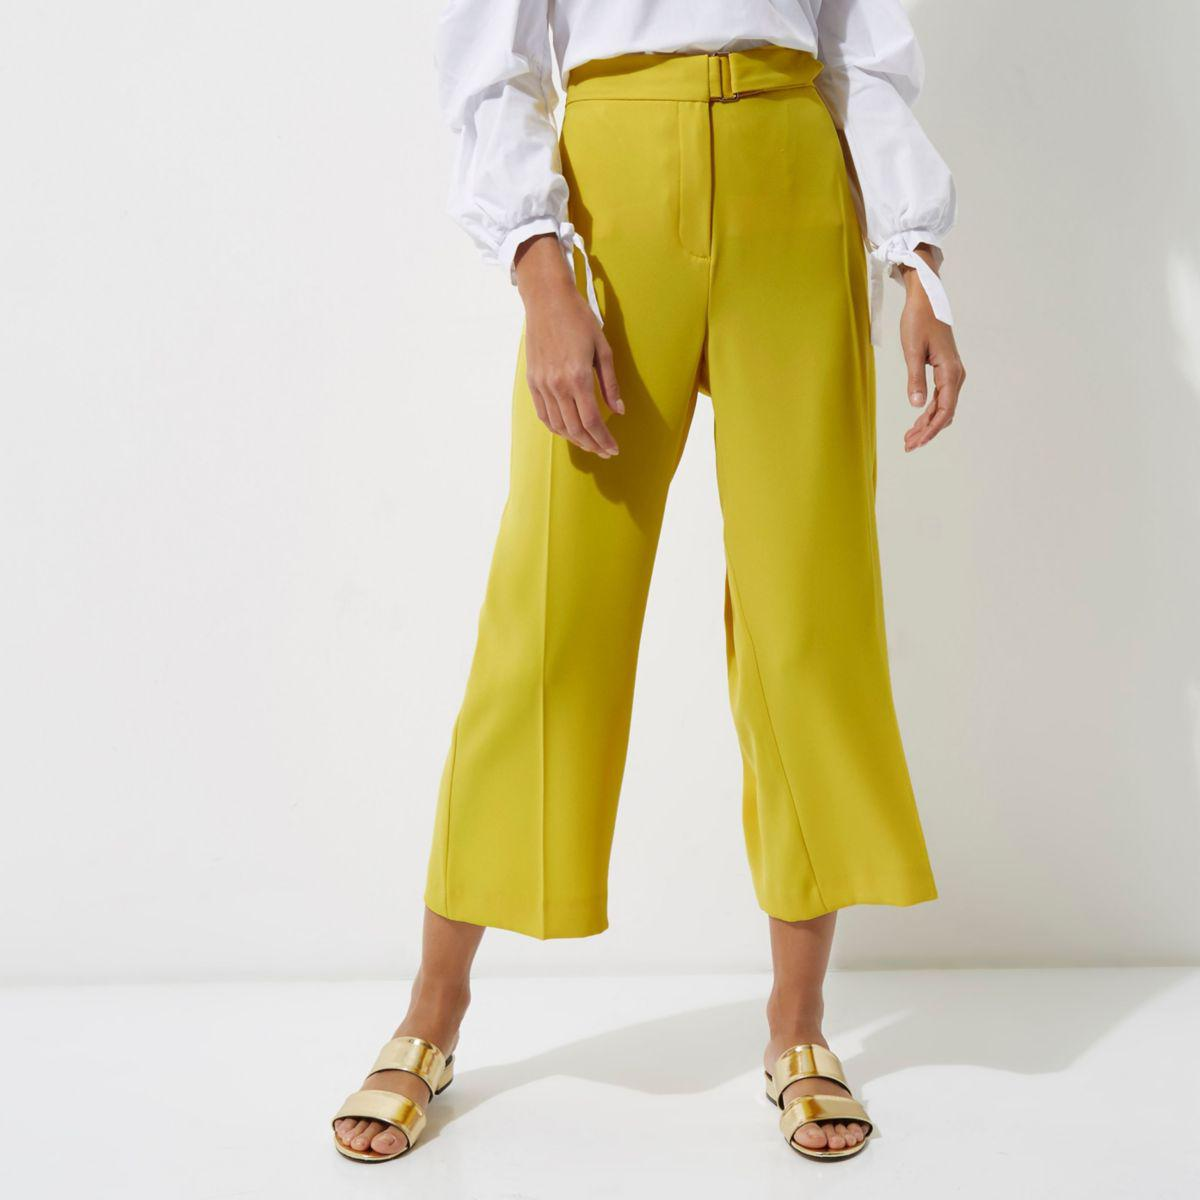 Womens Yellow crochet knit flared trousers River Island X8c2ZLxi0